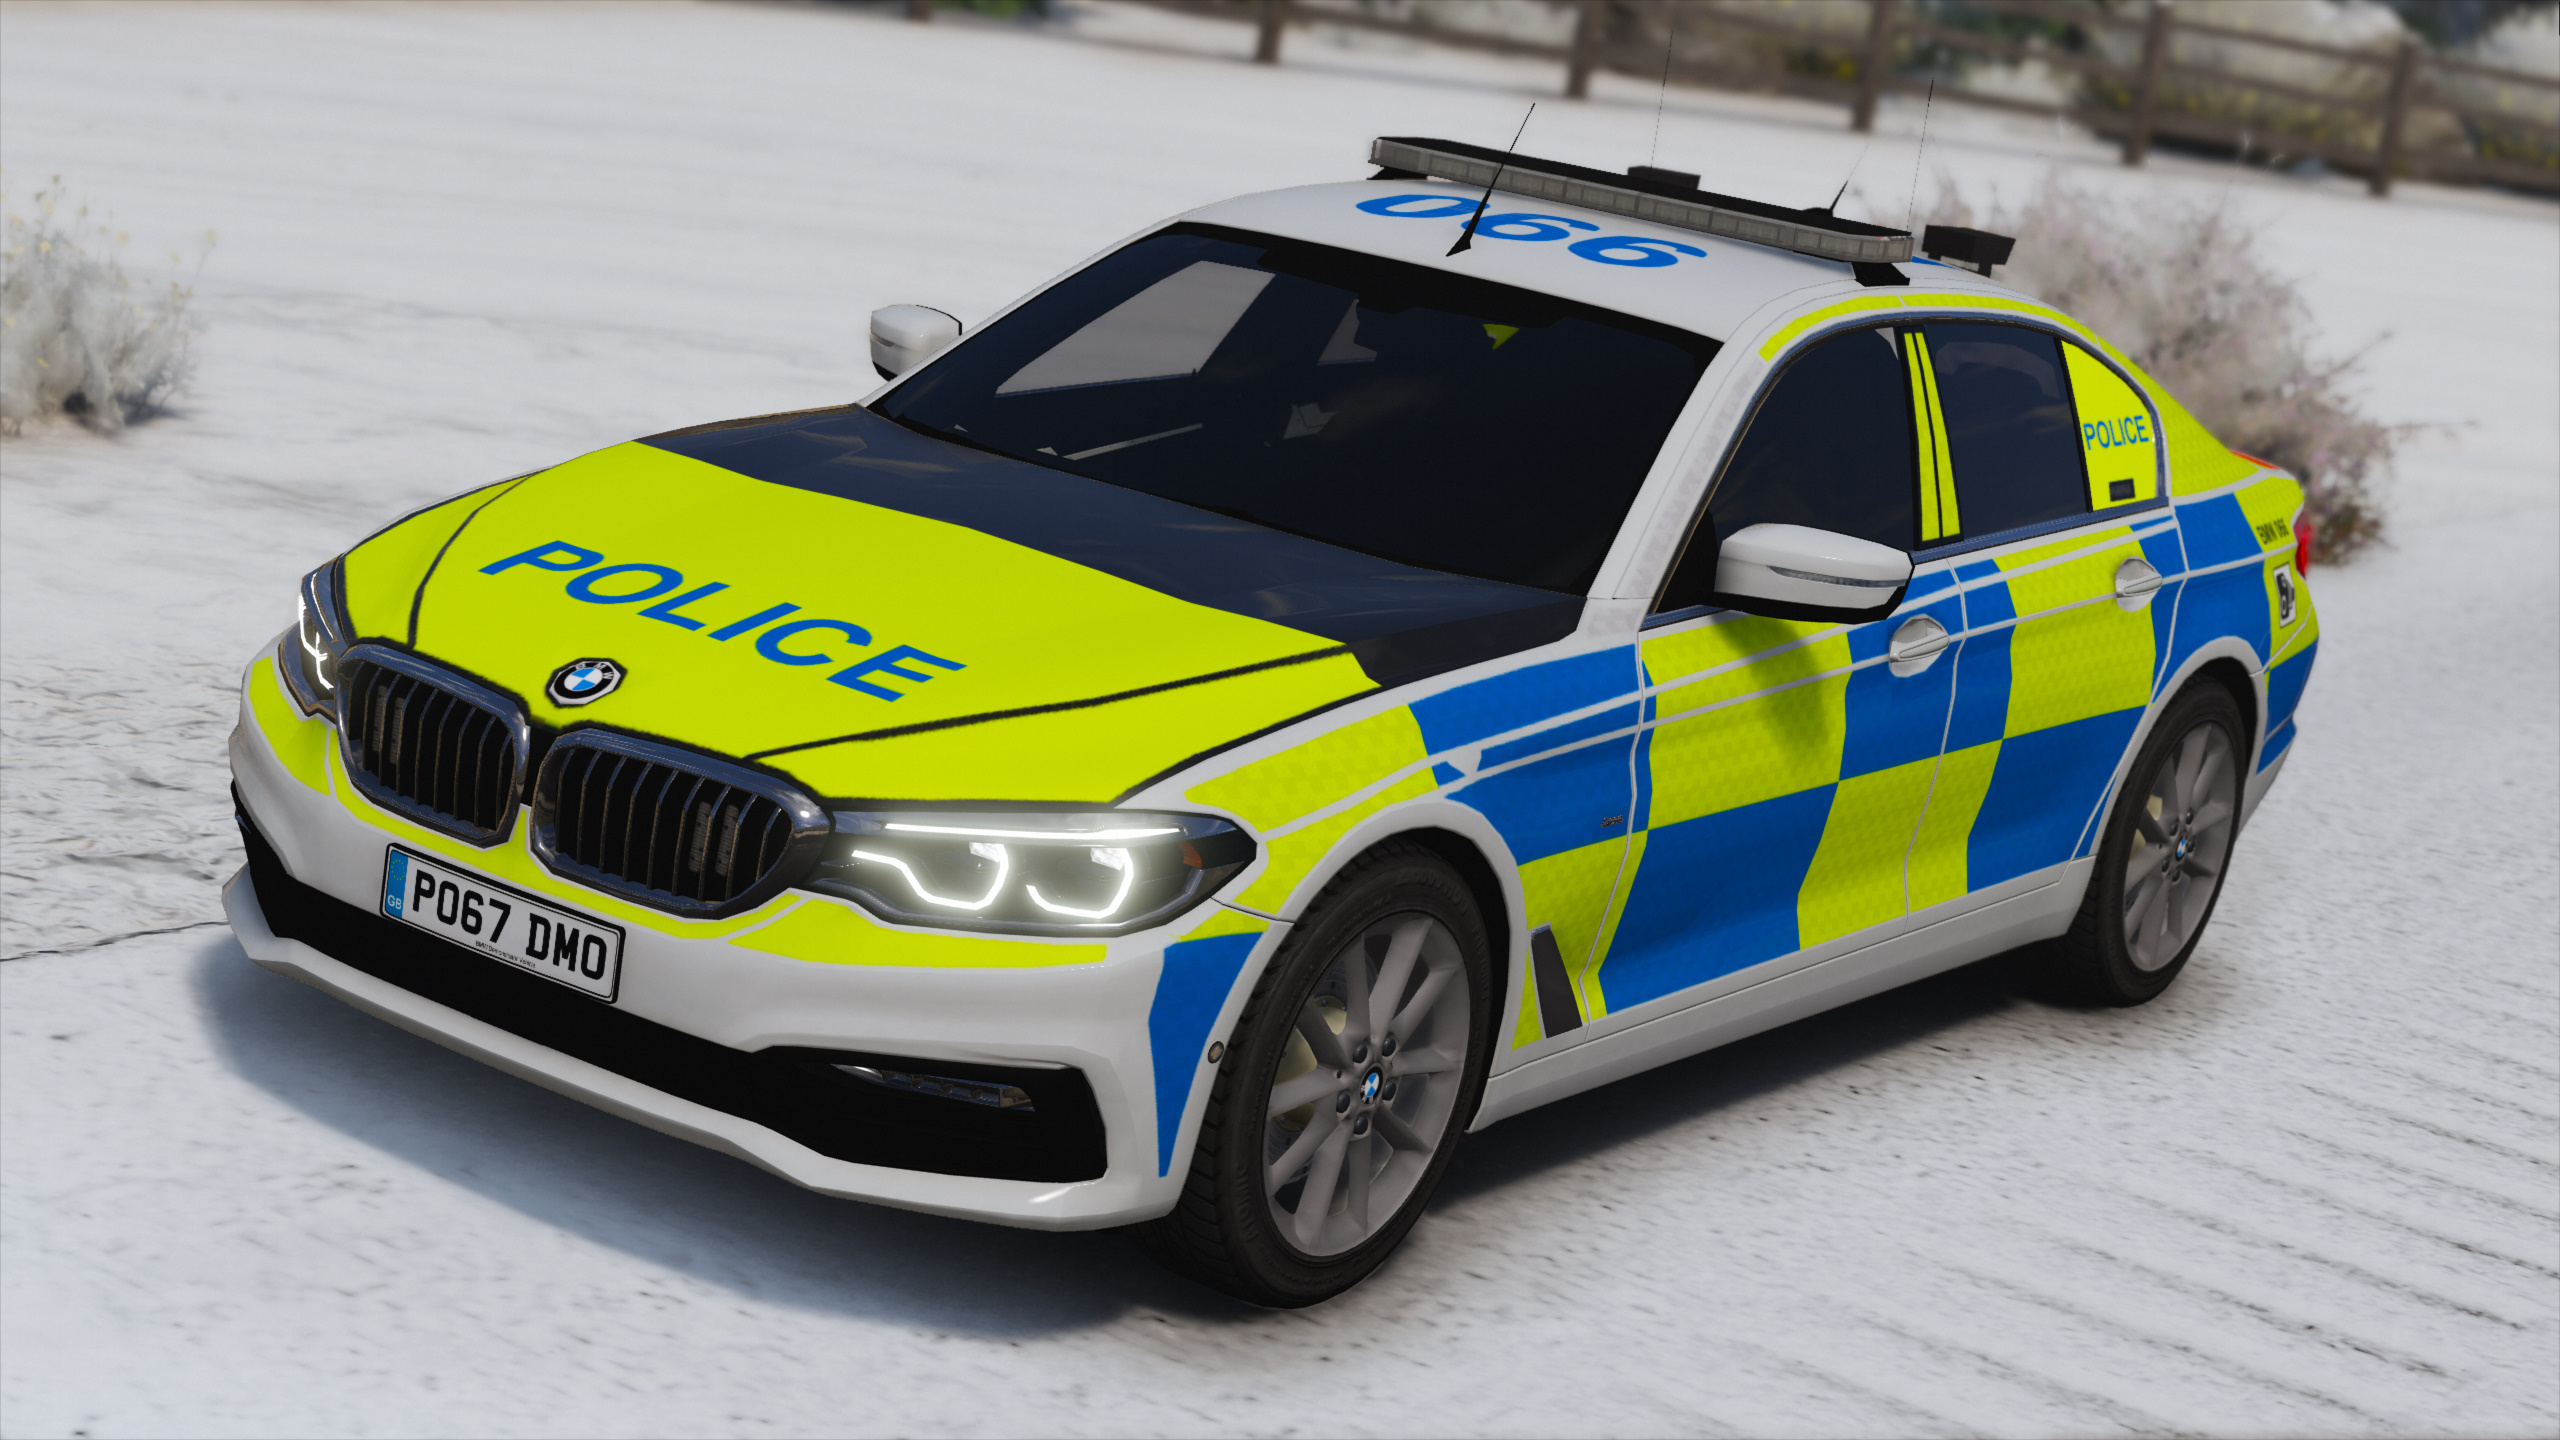 2017 police bmw g30 5-series [replace | els] - gta5-mods